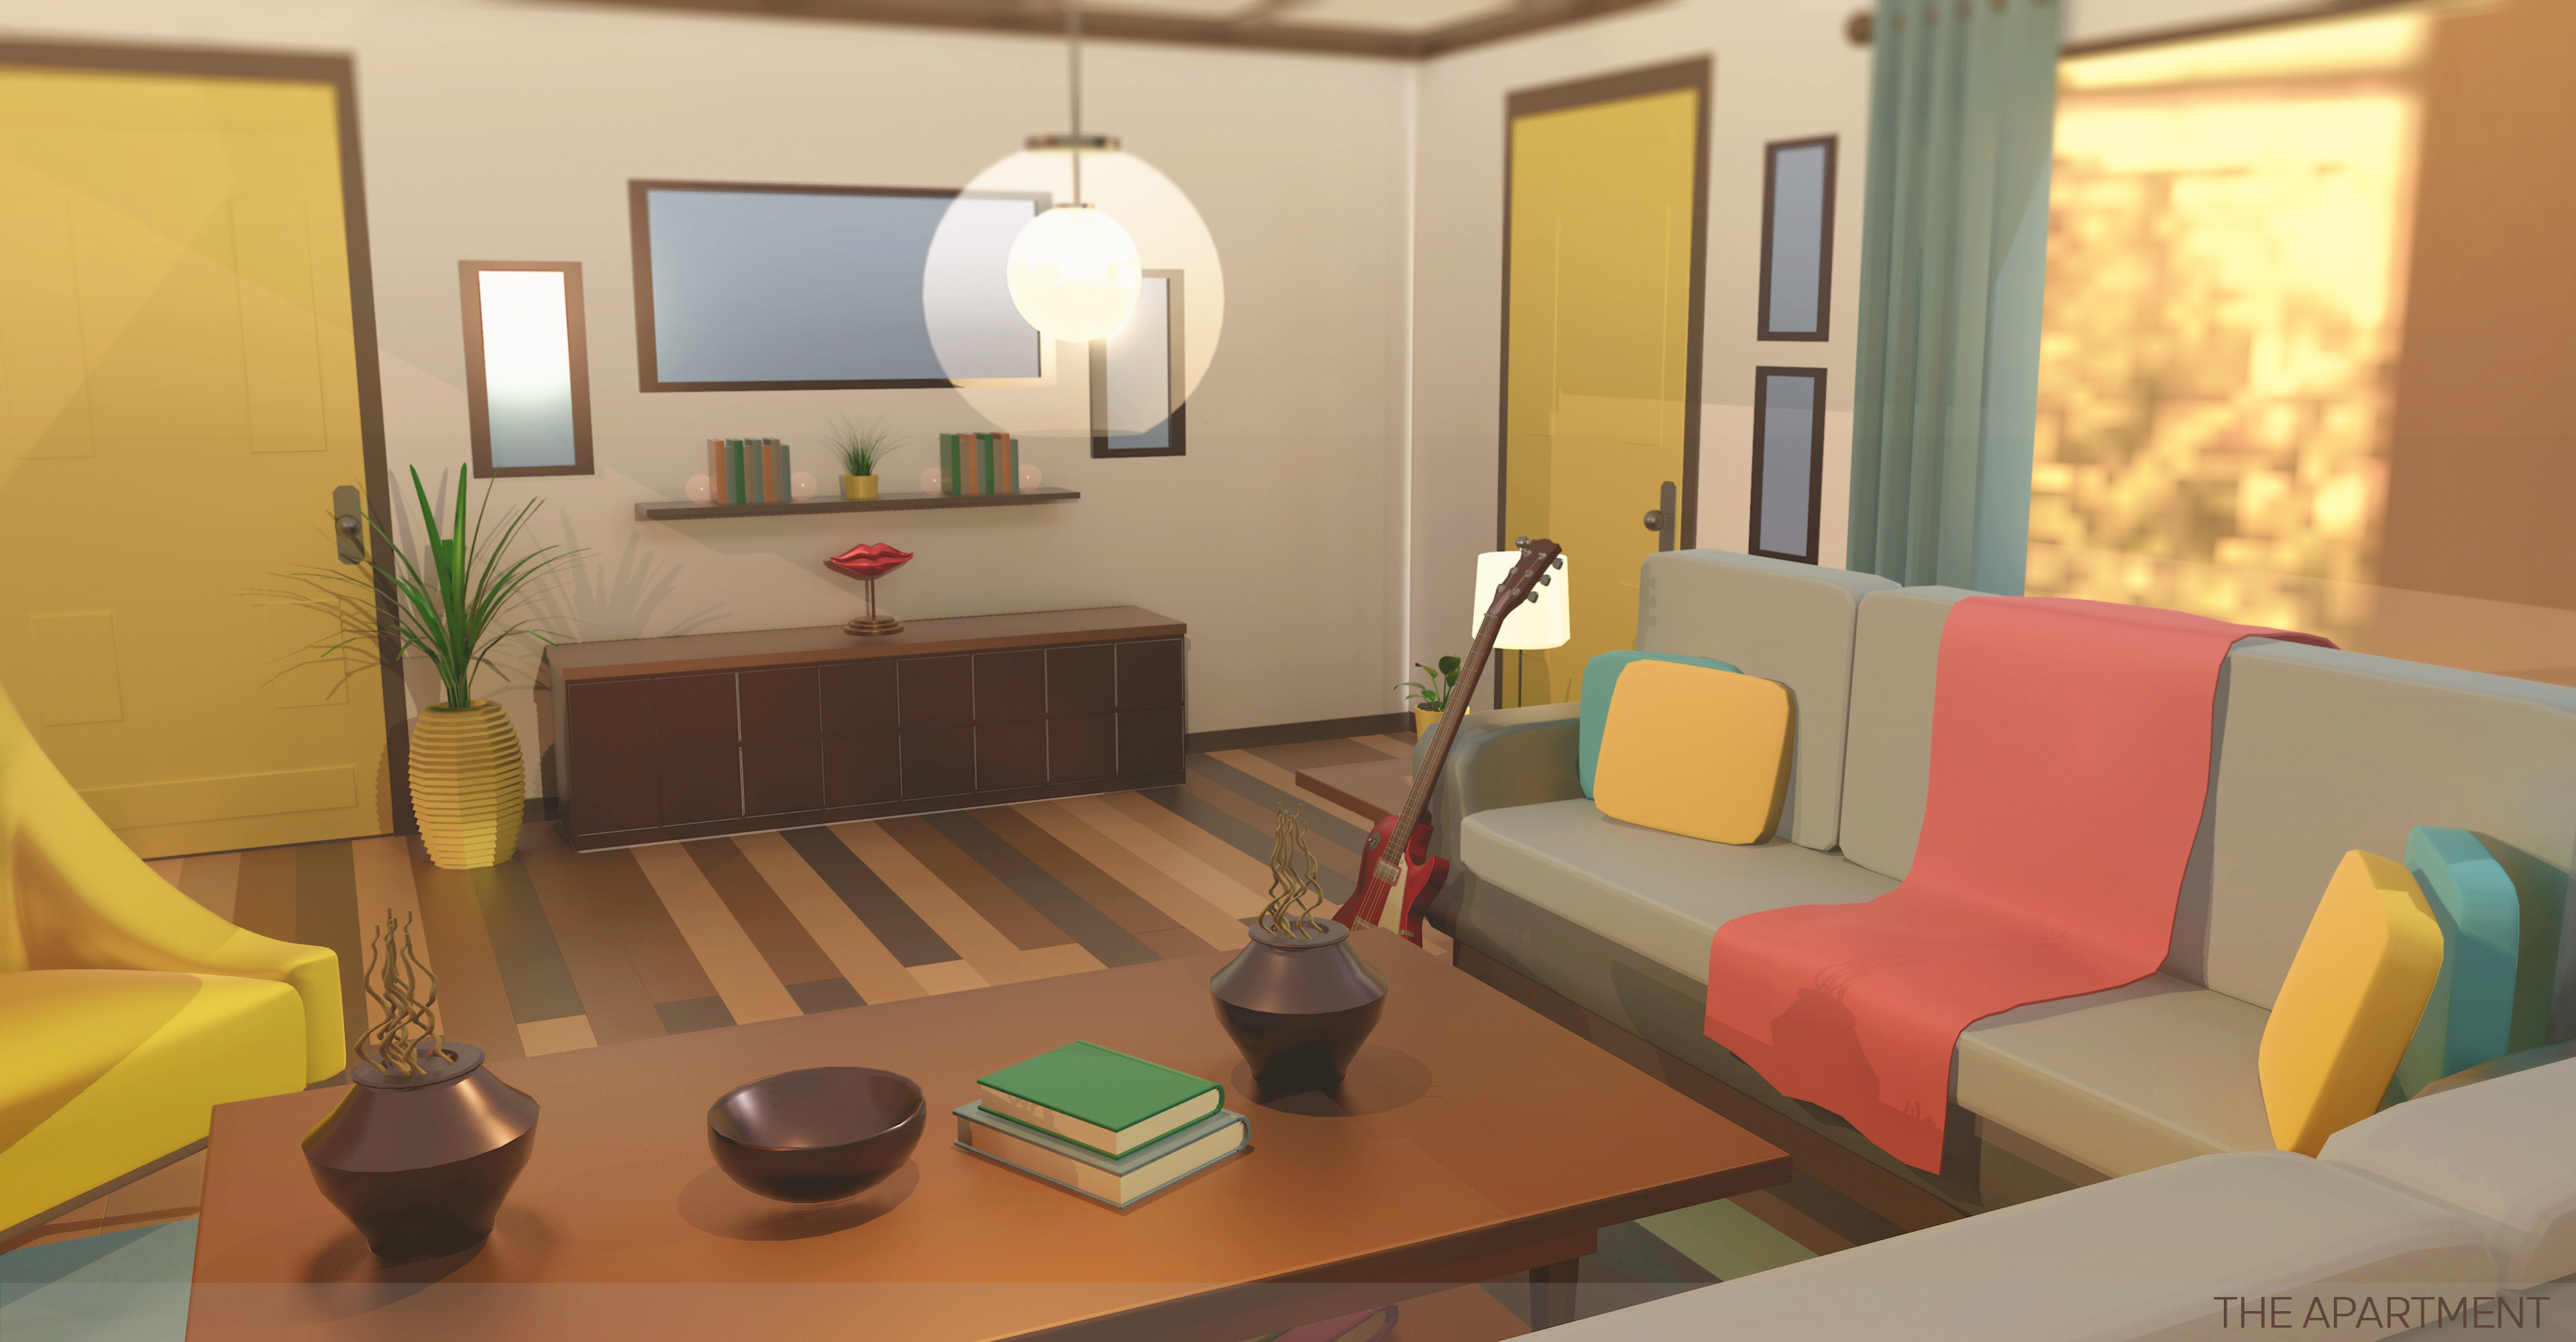 The_Apartment_Render_04